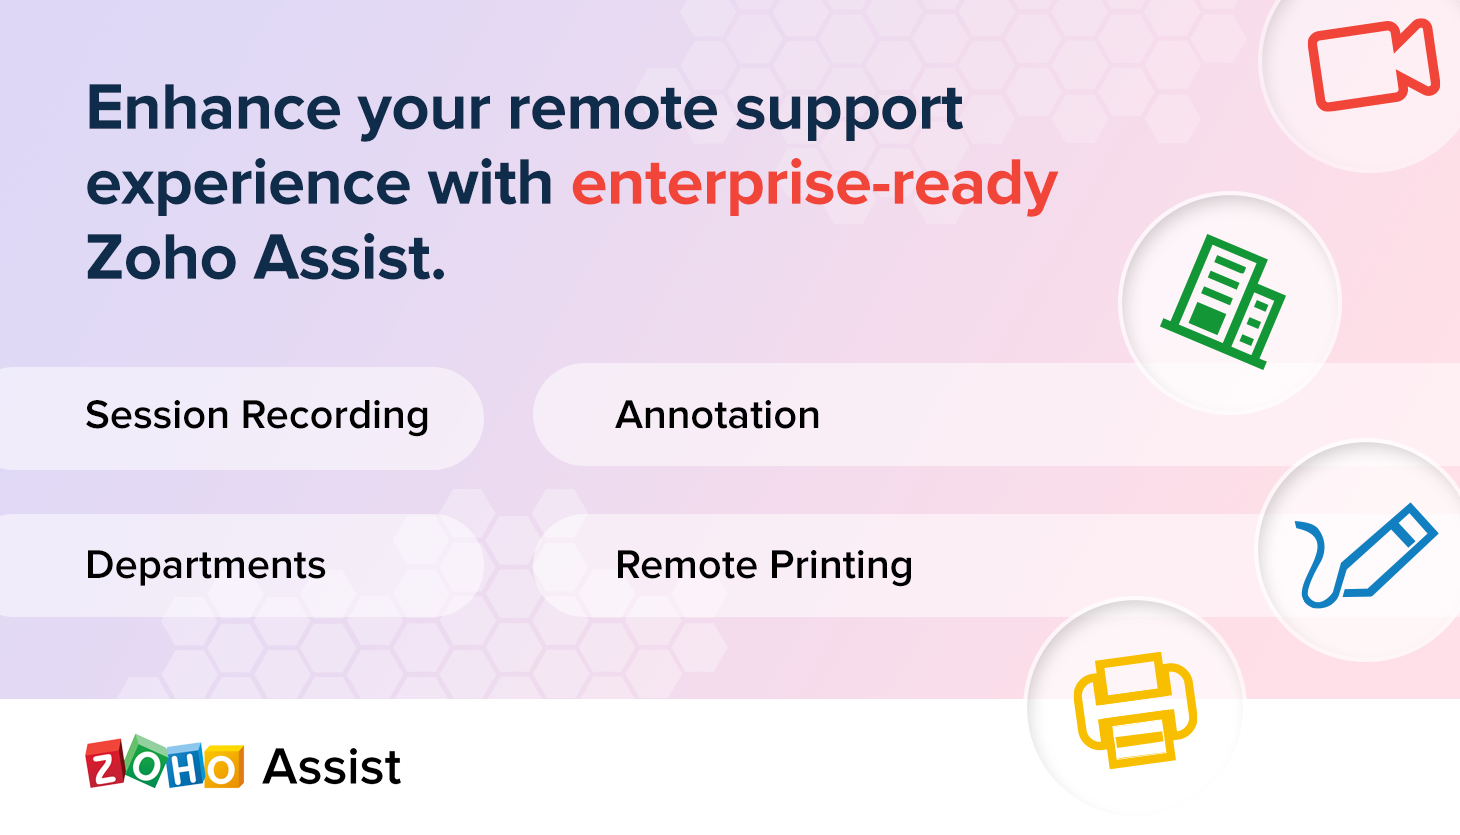 It's here! Rolling out Session Recording, Annotation, Remote Printing, and more in Zoho Assist.